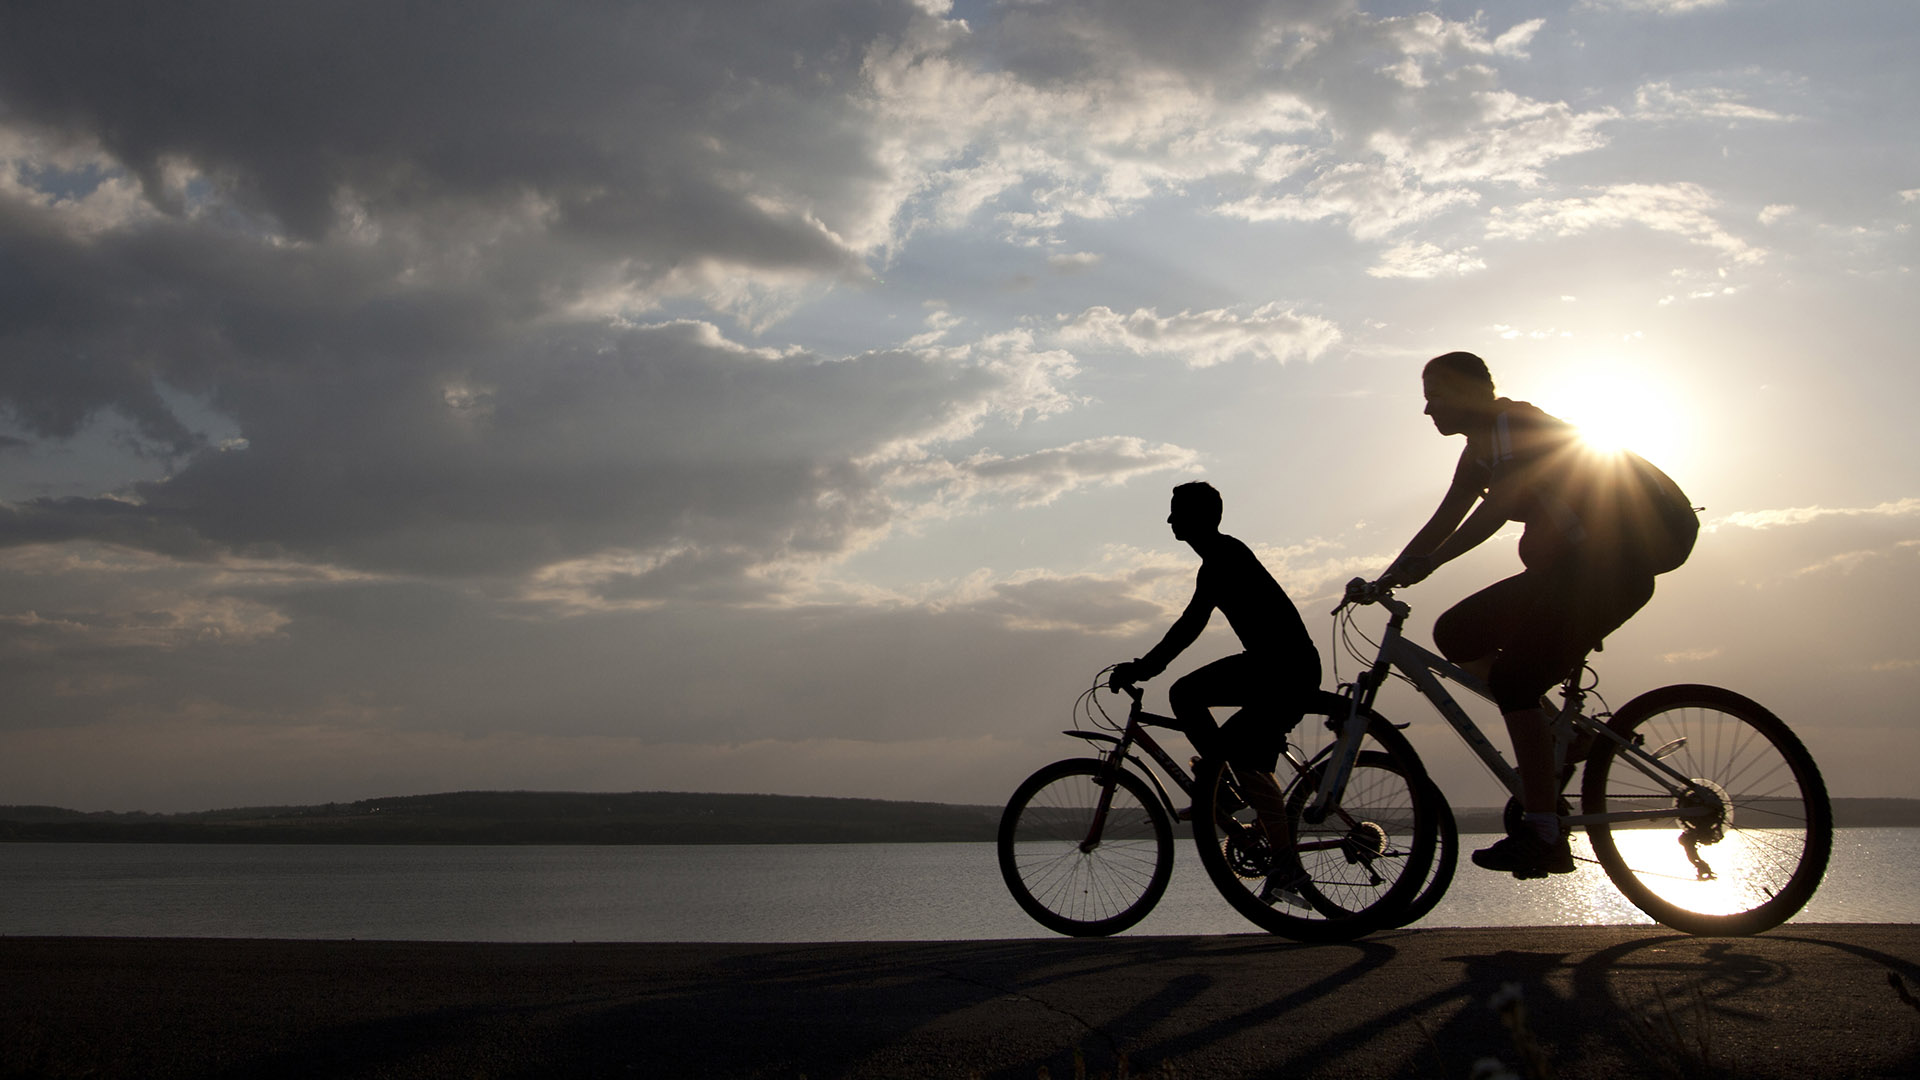 Bicycle riders at sunset. Shutterstock image